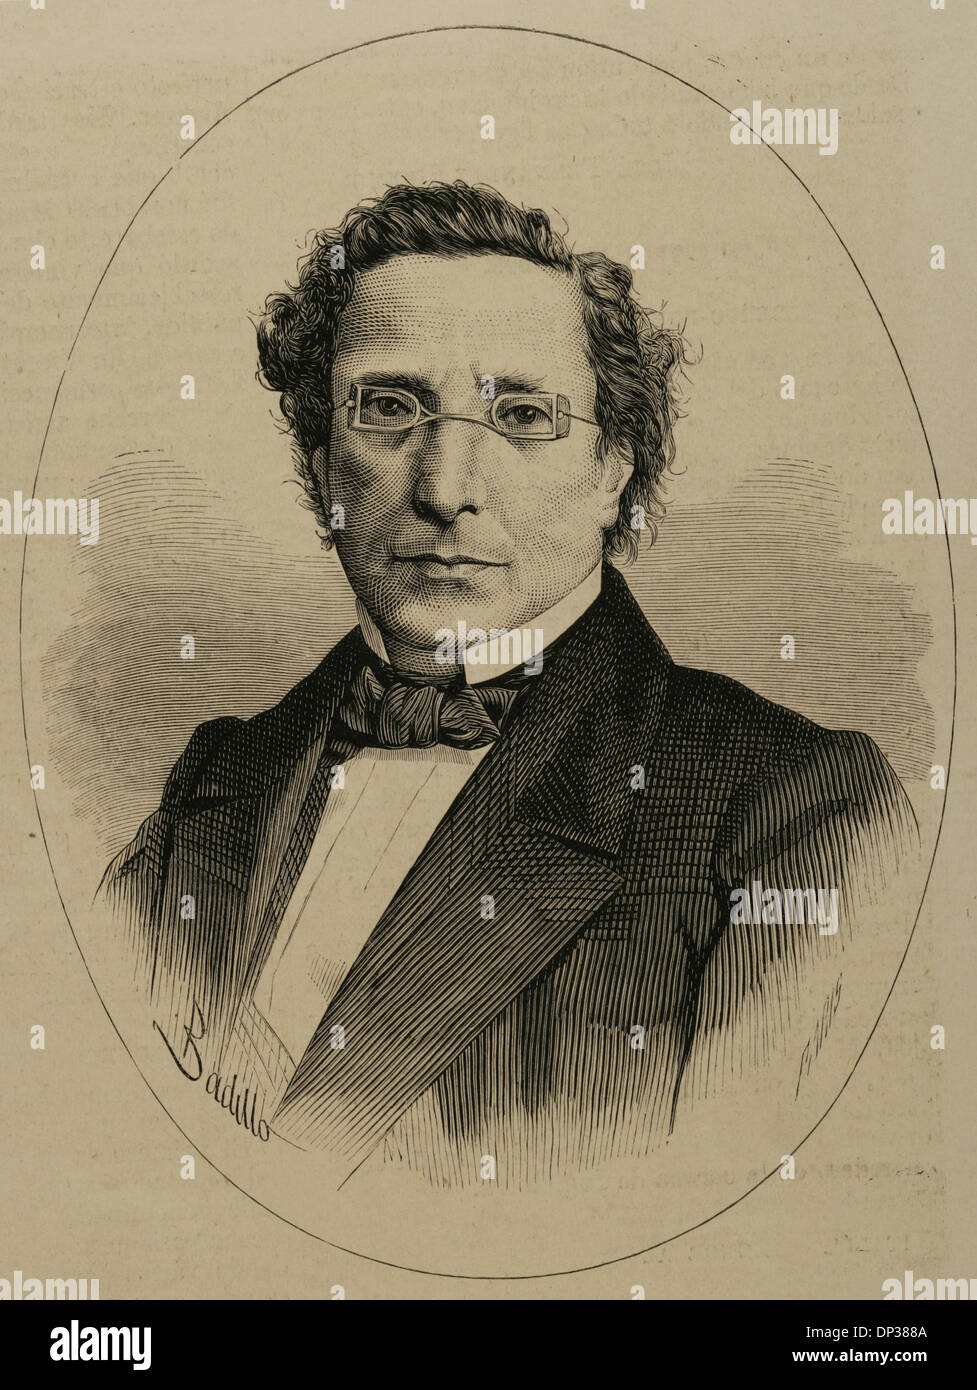 Jose Maria Lafragua Ibarra (1813-1875). Mexican politician and writer. Engraving. - Stock Image